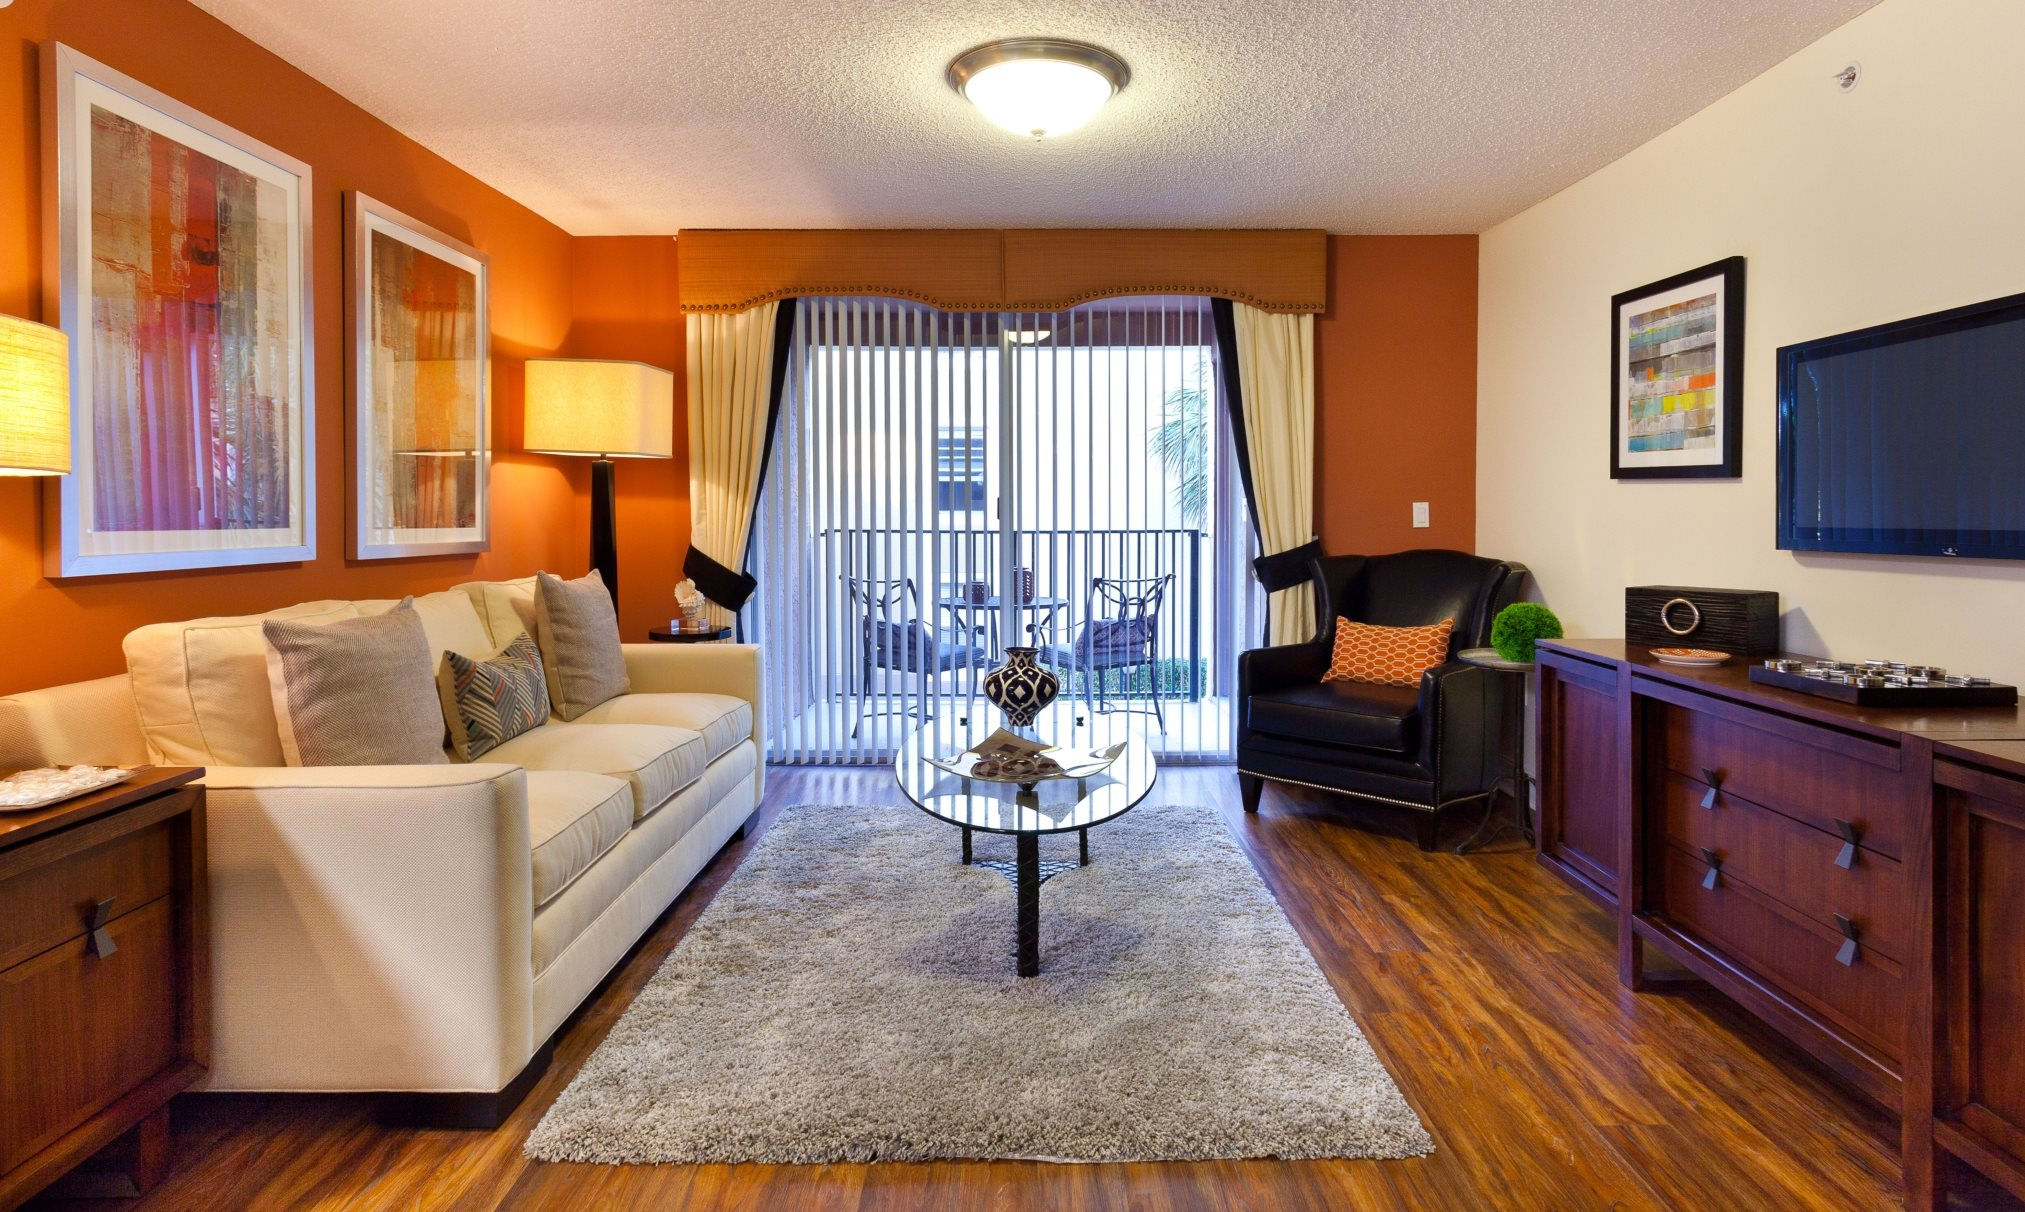 Crescent House Apartments | Apartments in Miami Lakes, FL